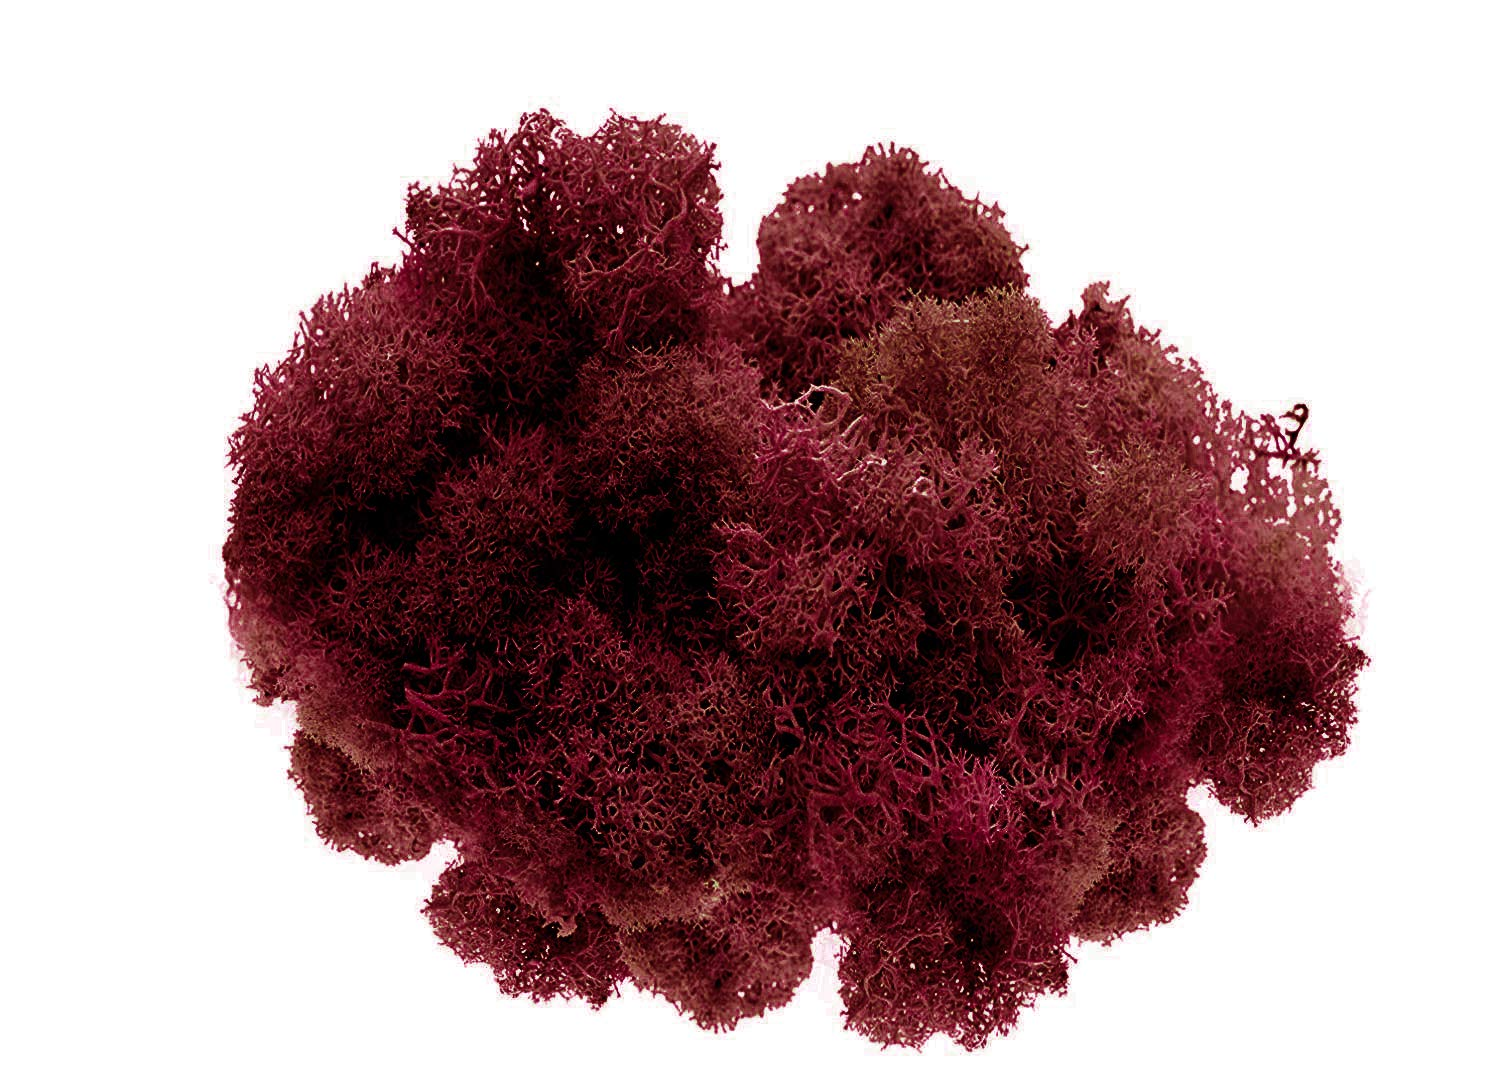 Nautical Crush Trading Reindeer Moss Preserved | Maroon Moss 8 Ounces | for Fairy Gardens, Terrariums, or Any Craft or Floral Project TM